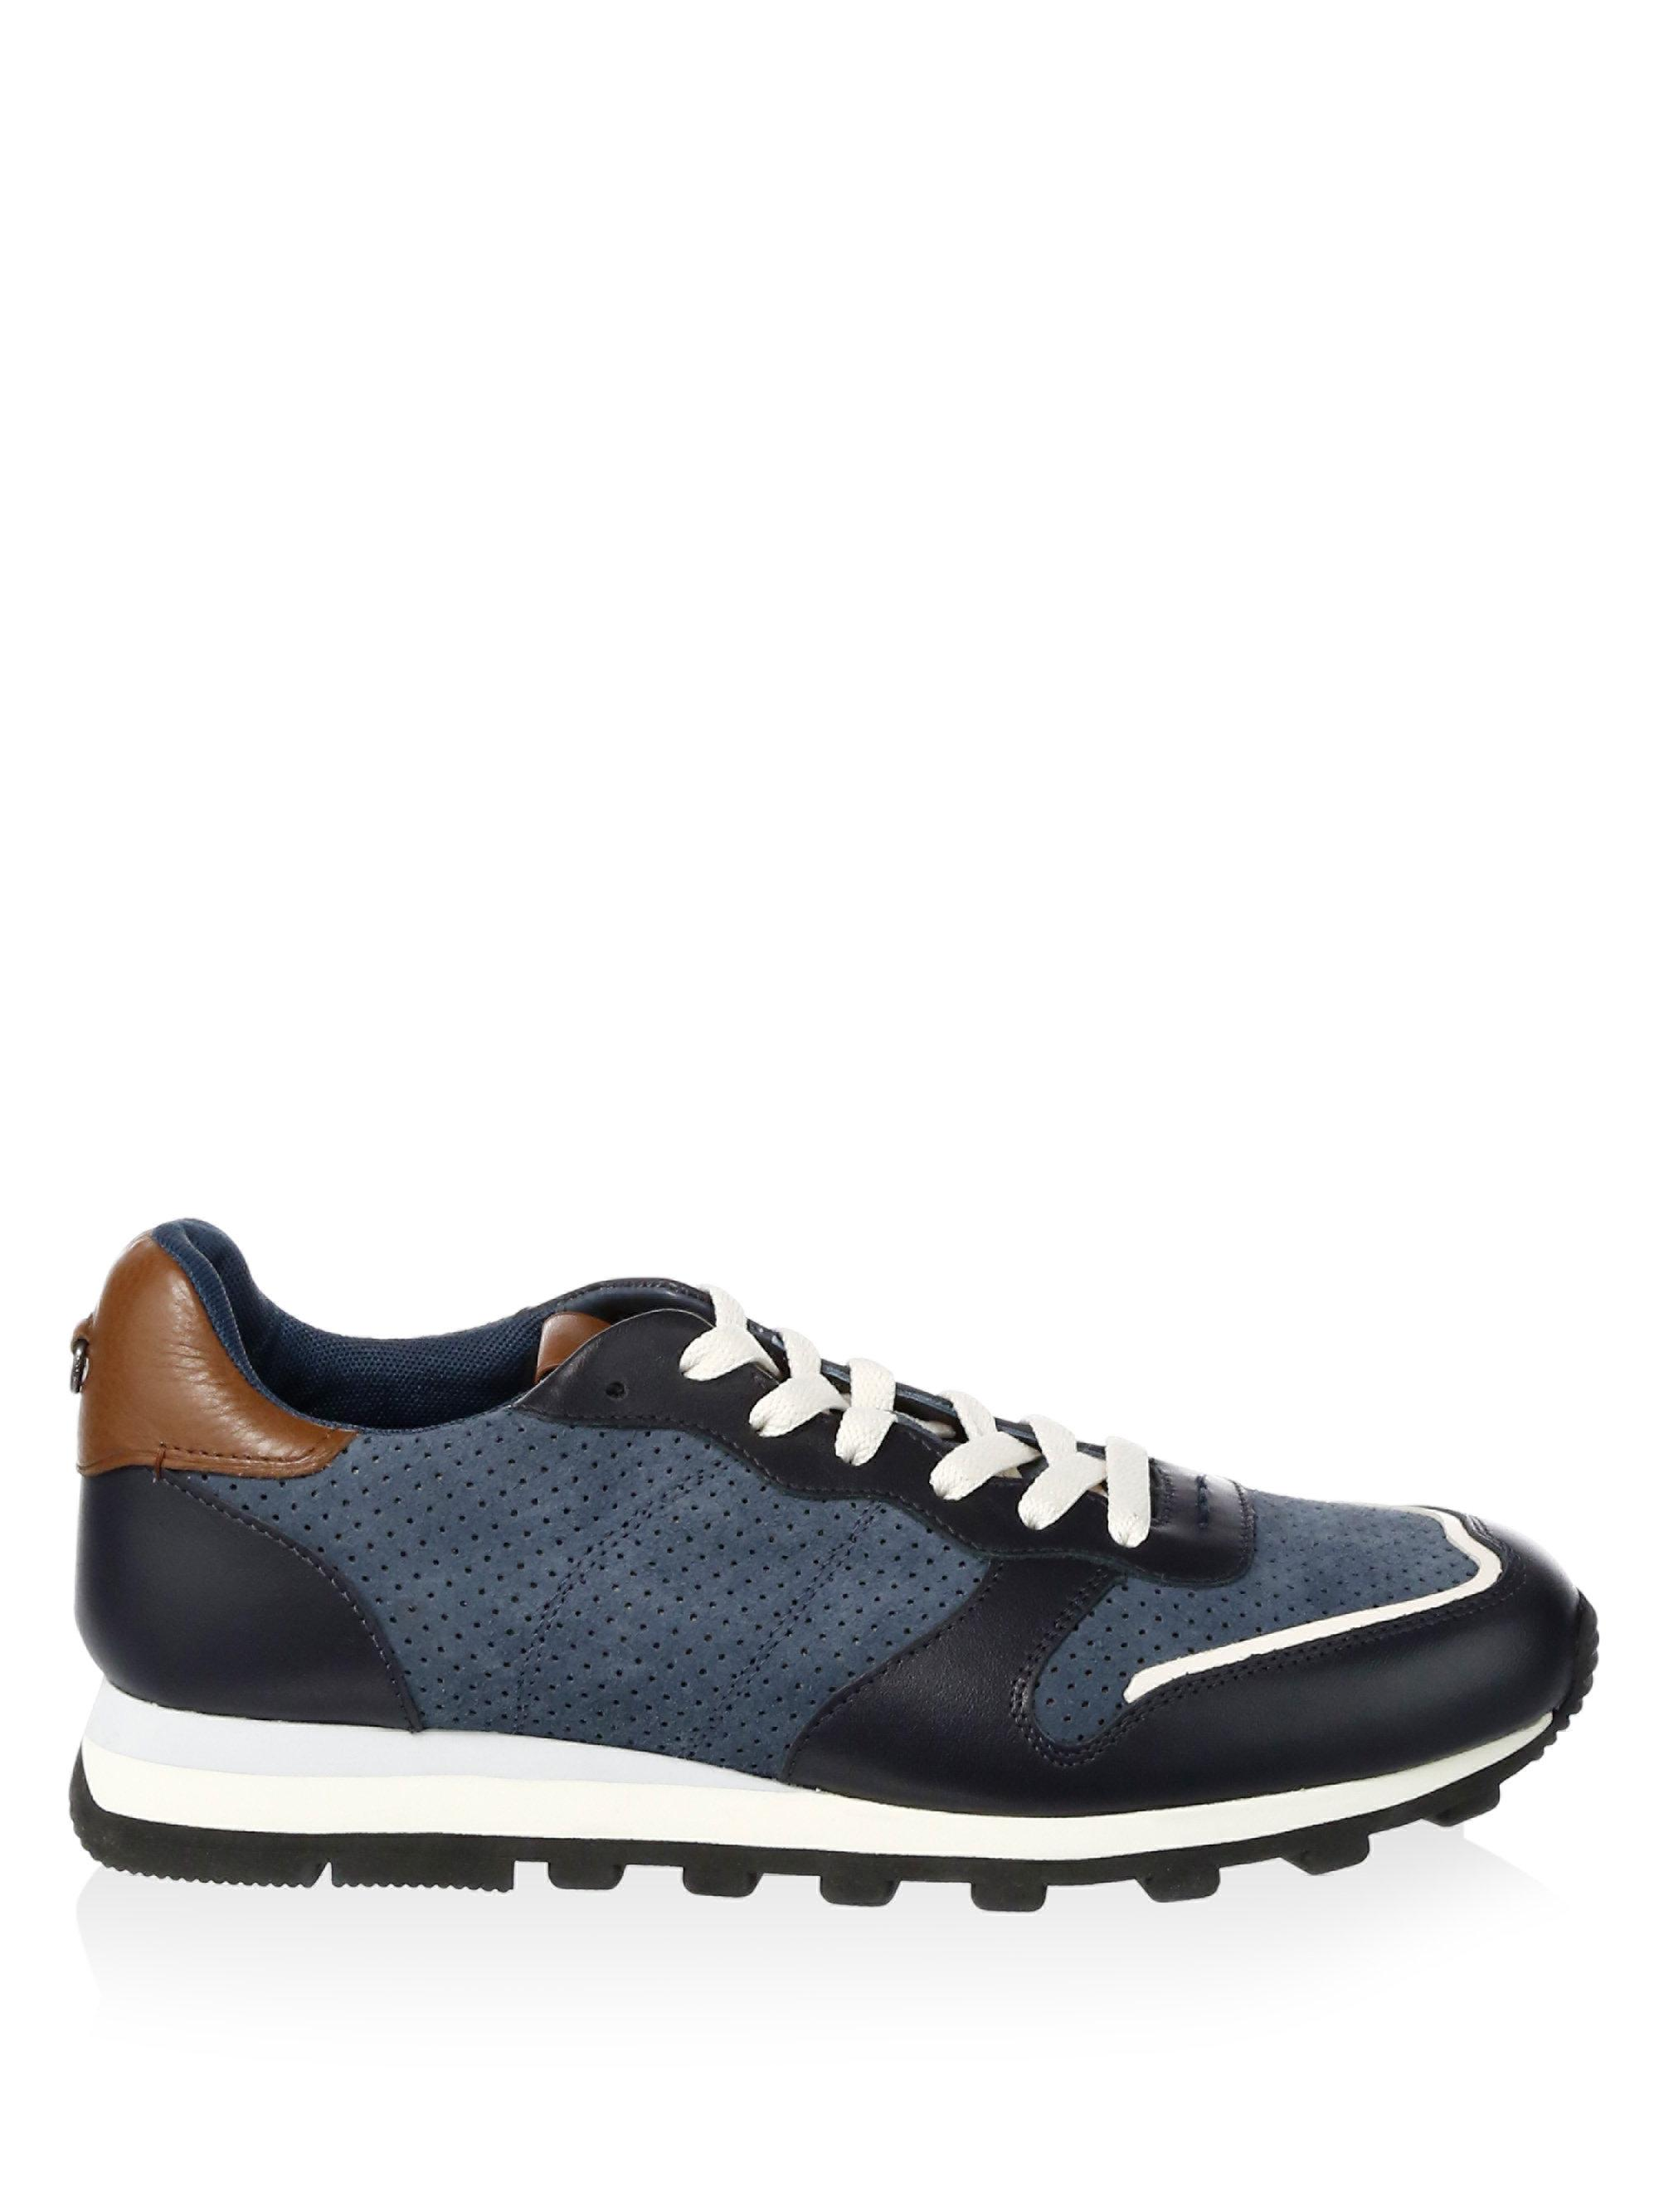 Coach Suede Perforated Leather Trim Running Sneakers In